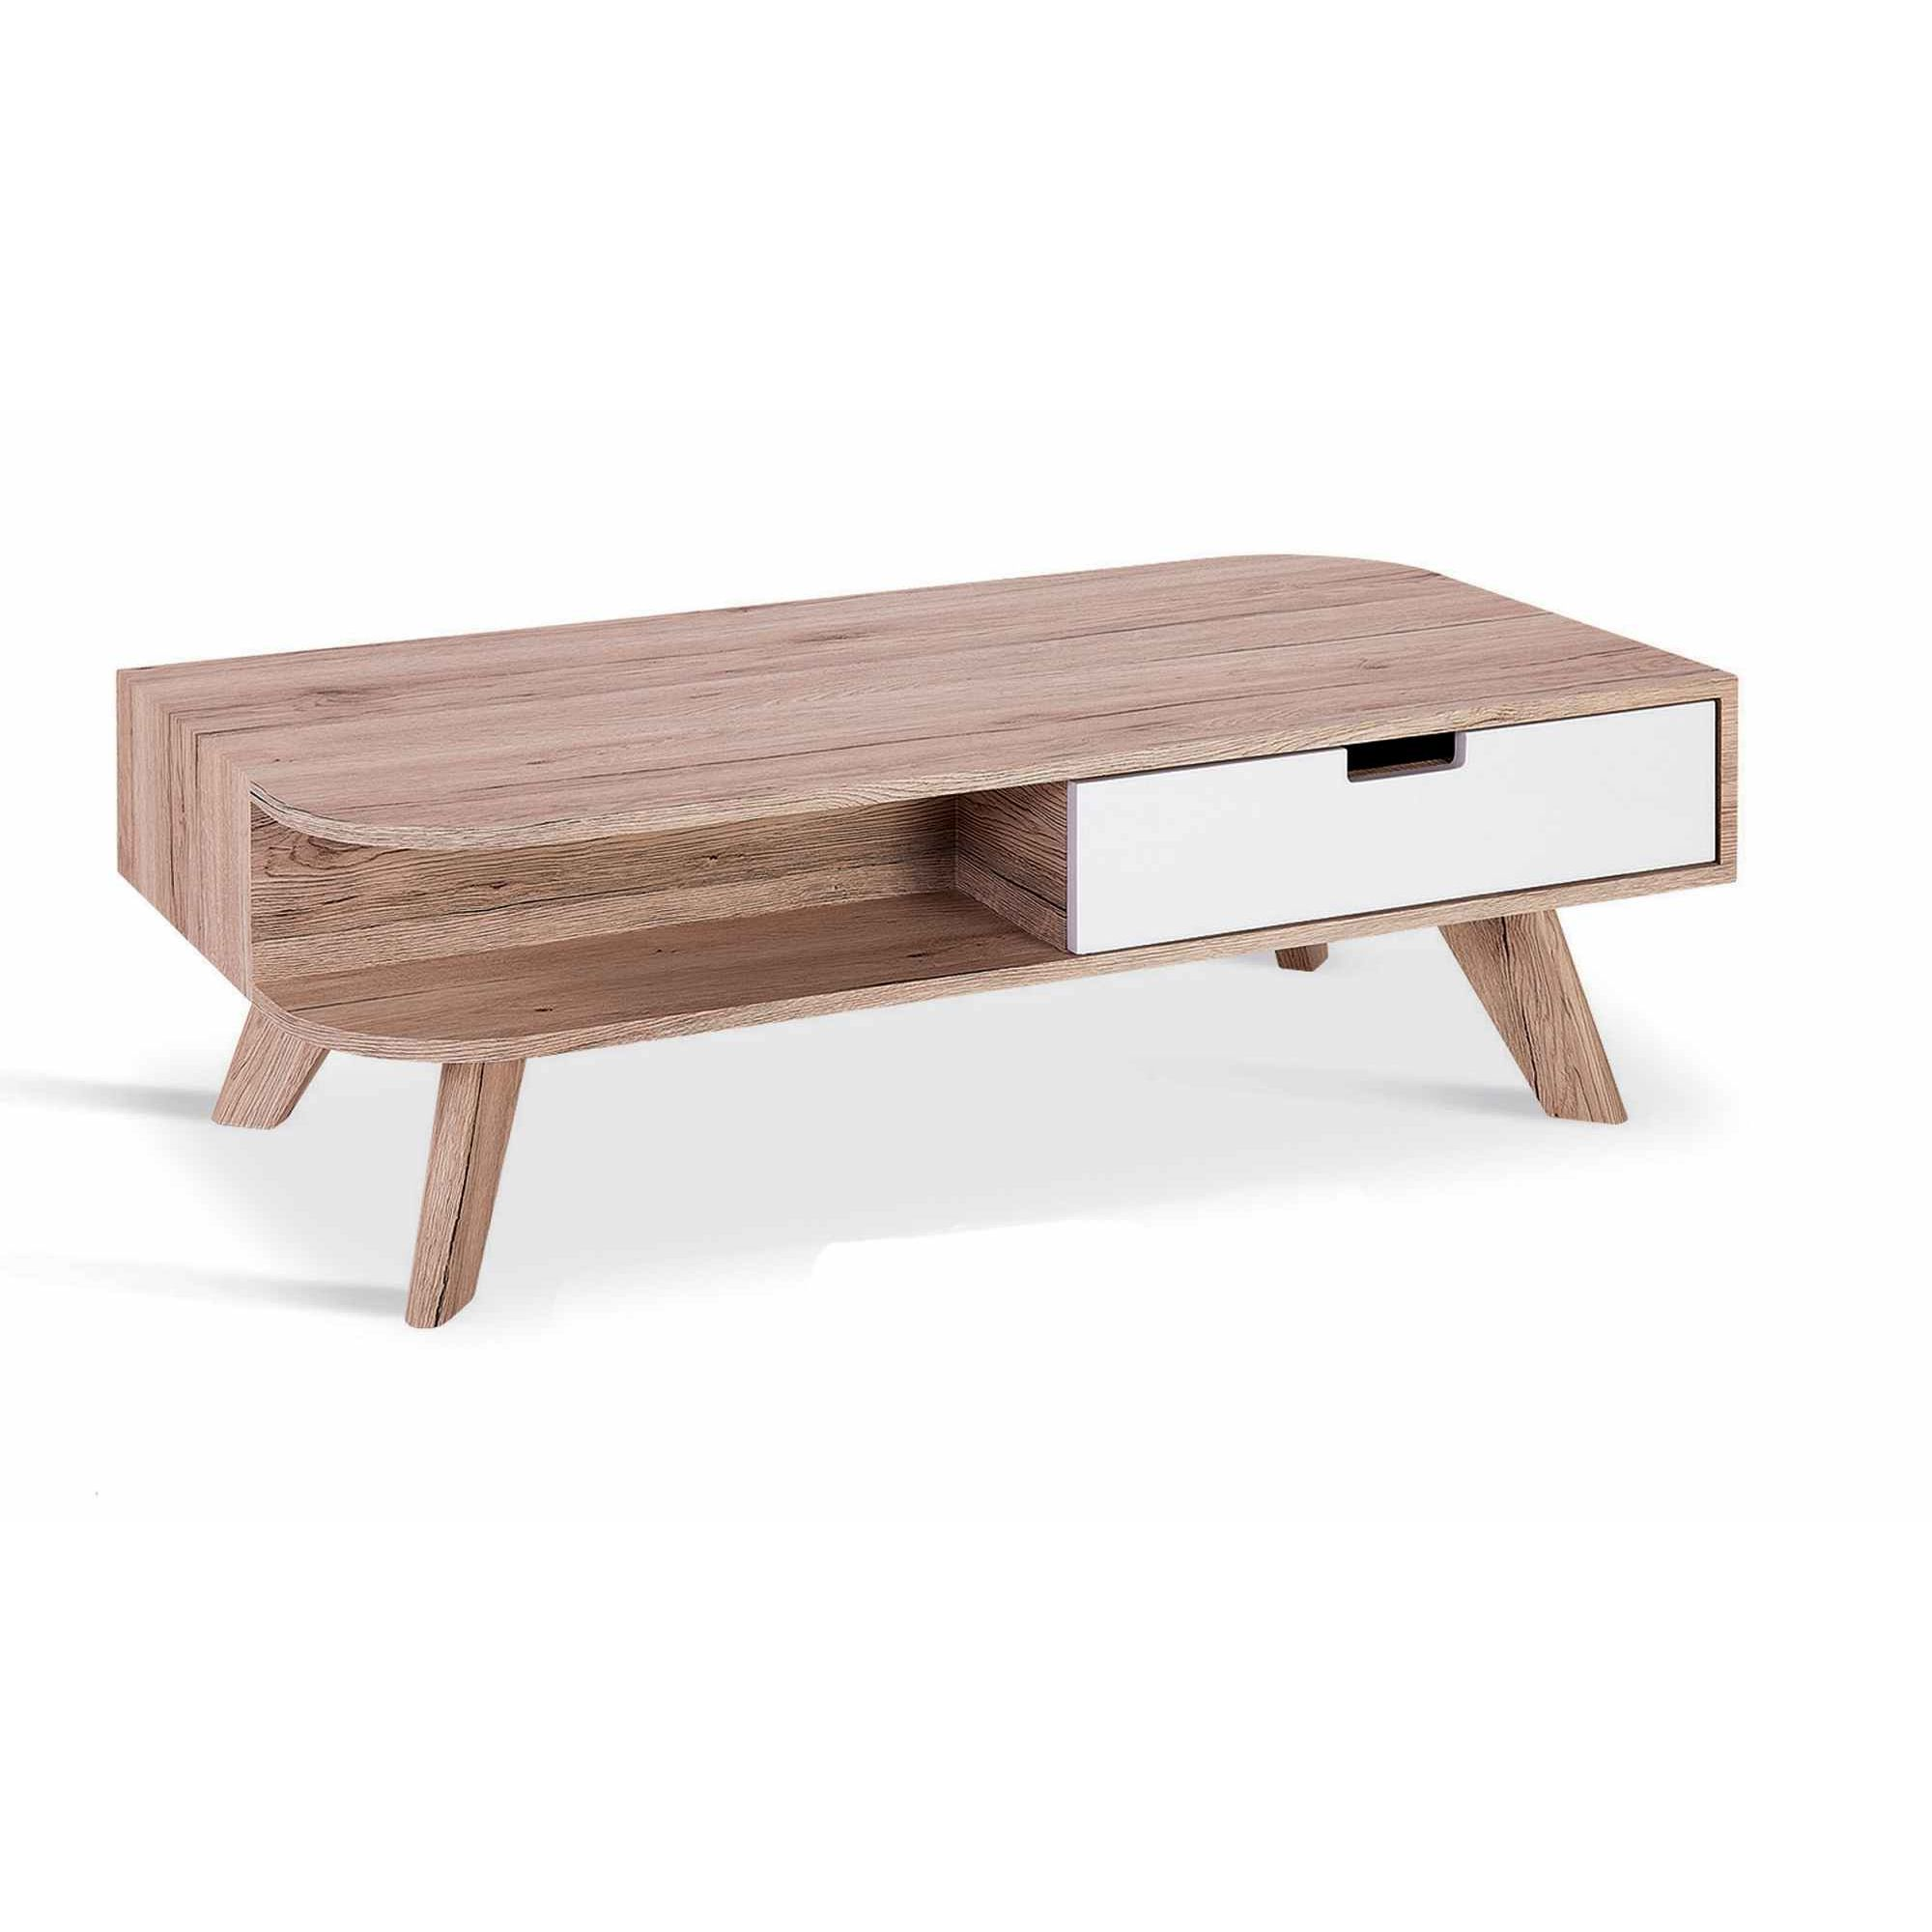 Deco In Paris Table Basse Scandinave En Bois Timaru Avec Tiroir  # Table Basse Scandinave Laque